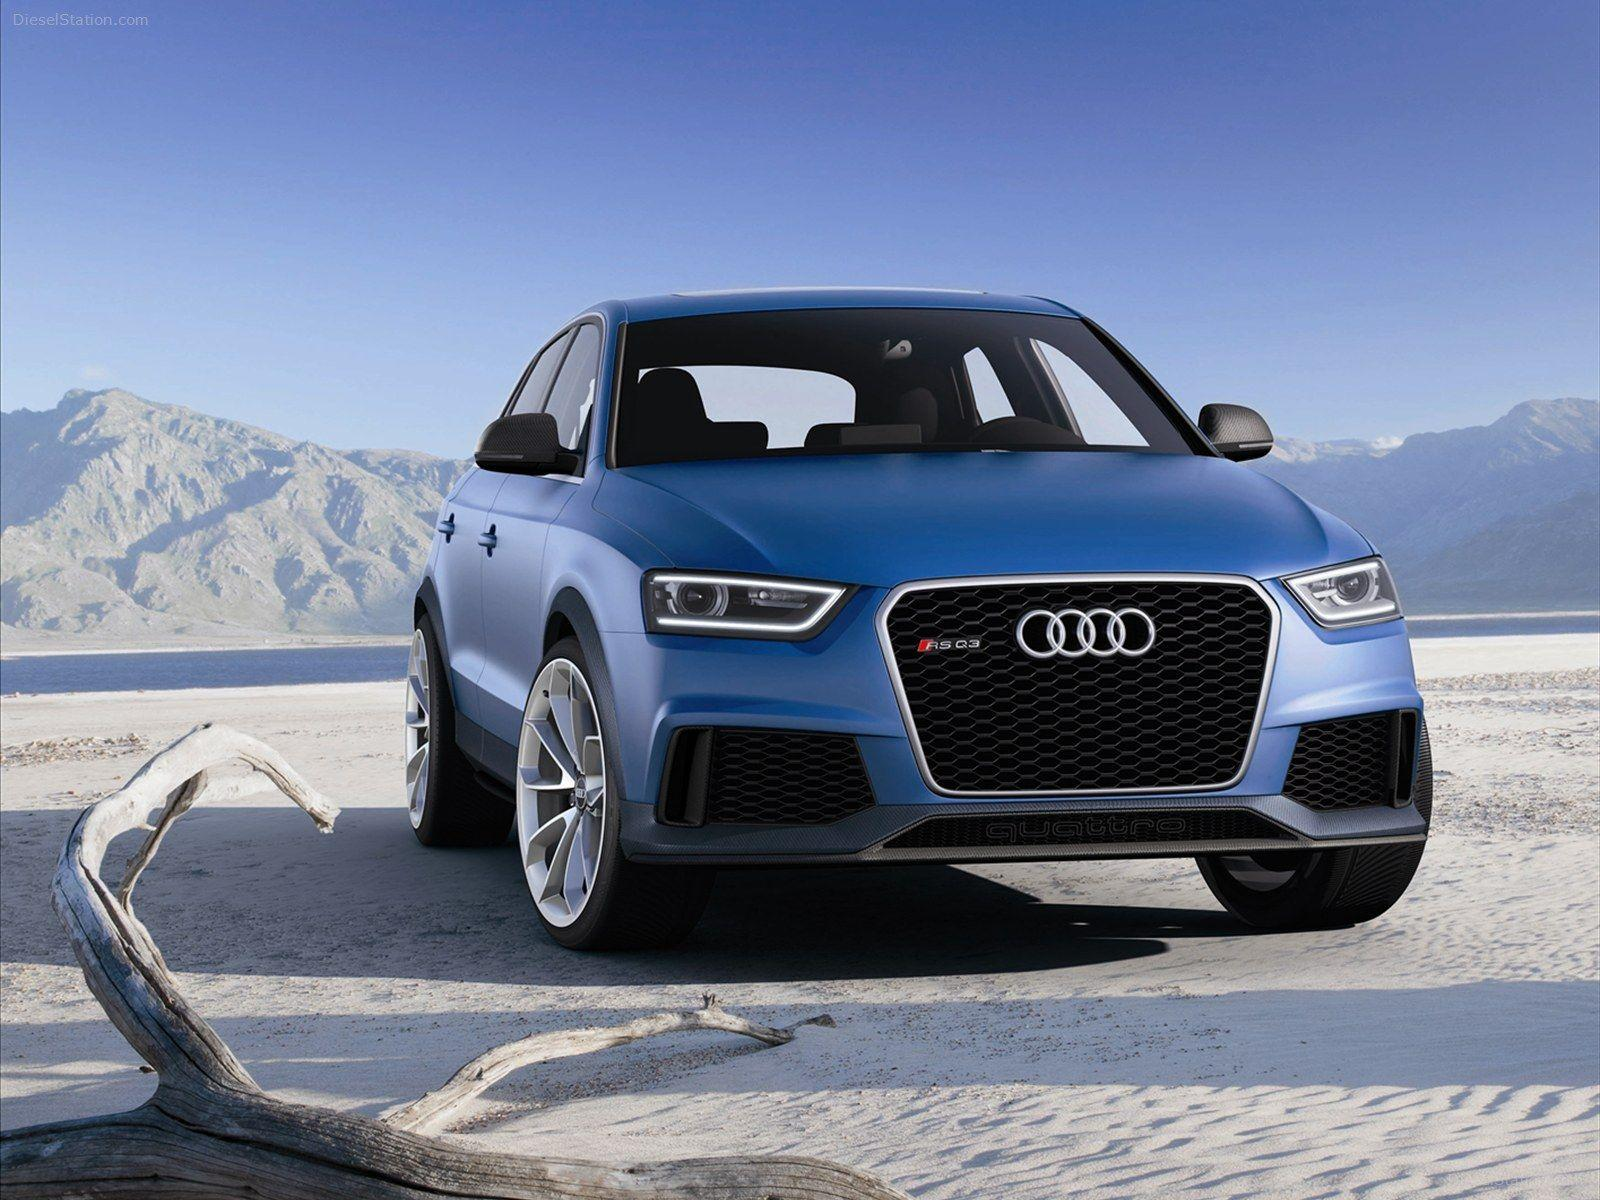 Audi RS Q3 Concept 2012 Exotic Car Wallpapers #08 of 42 : Diesel ...